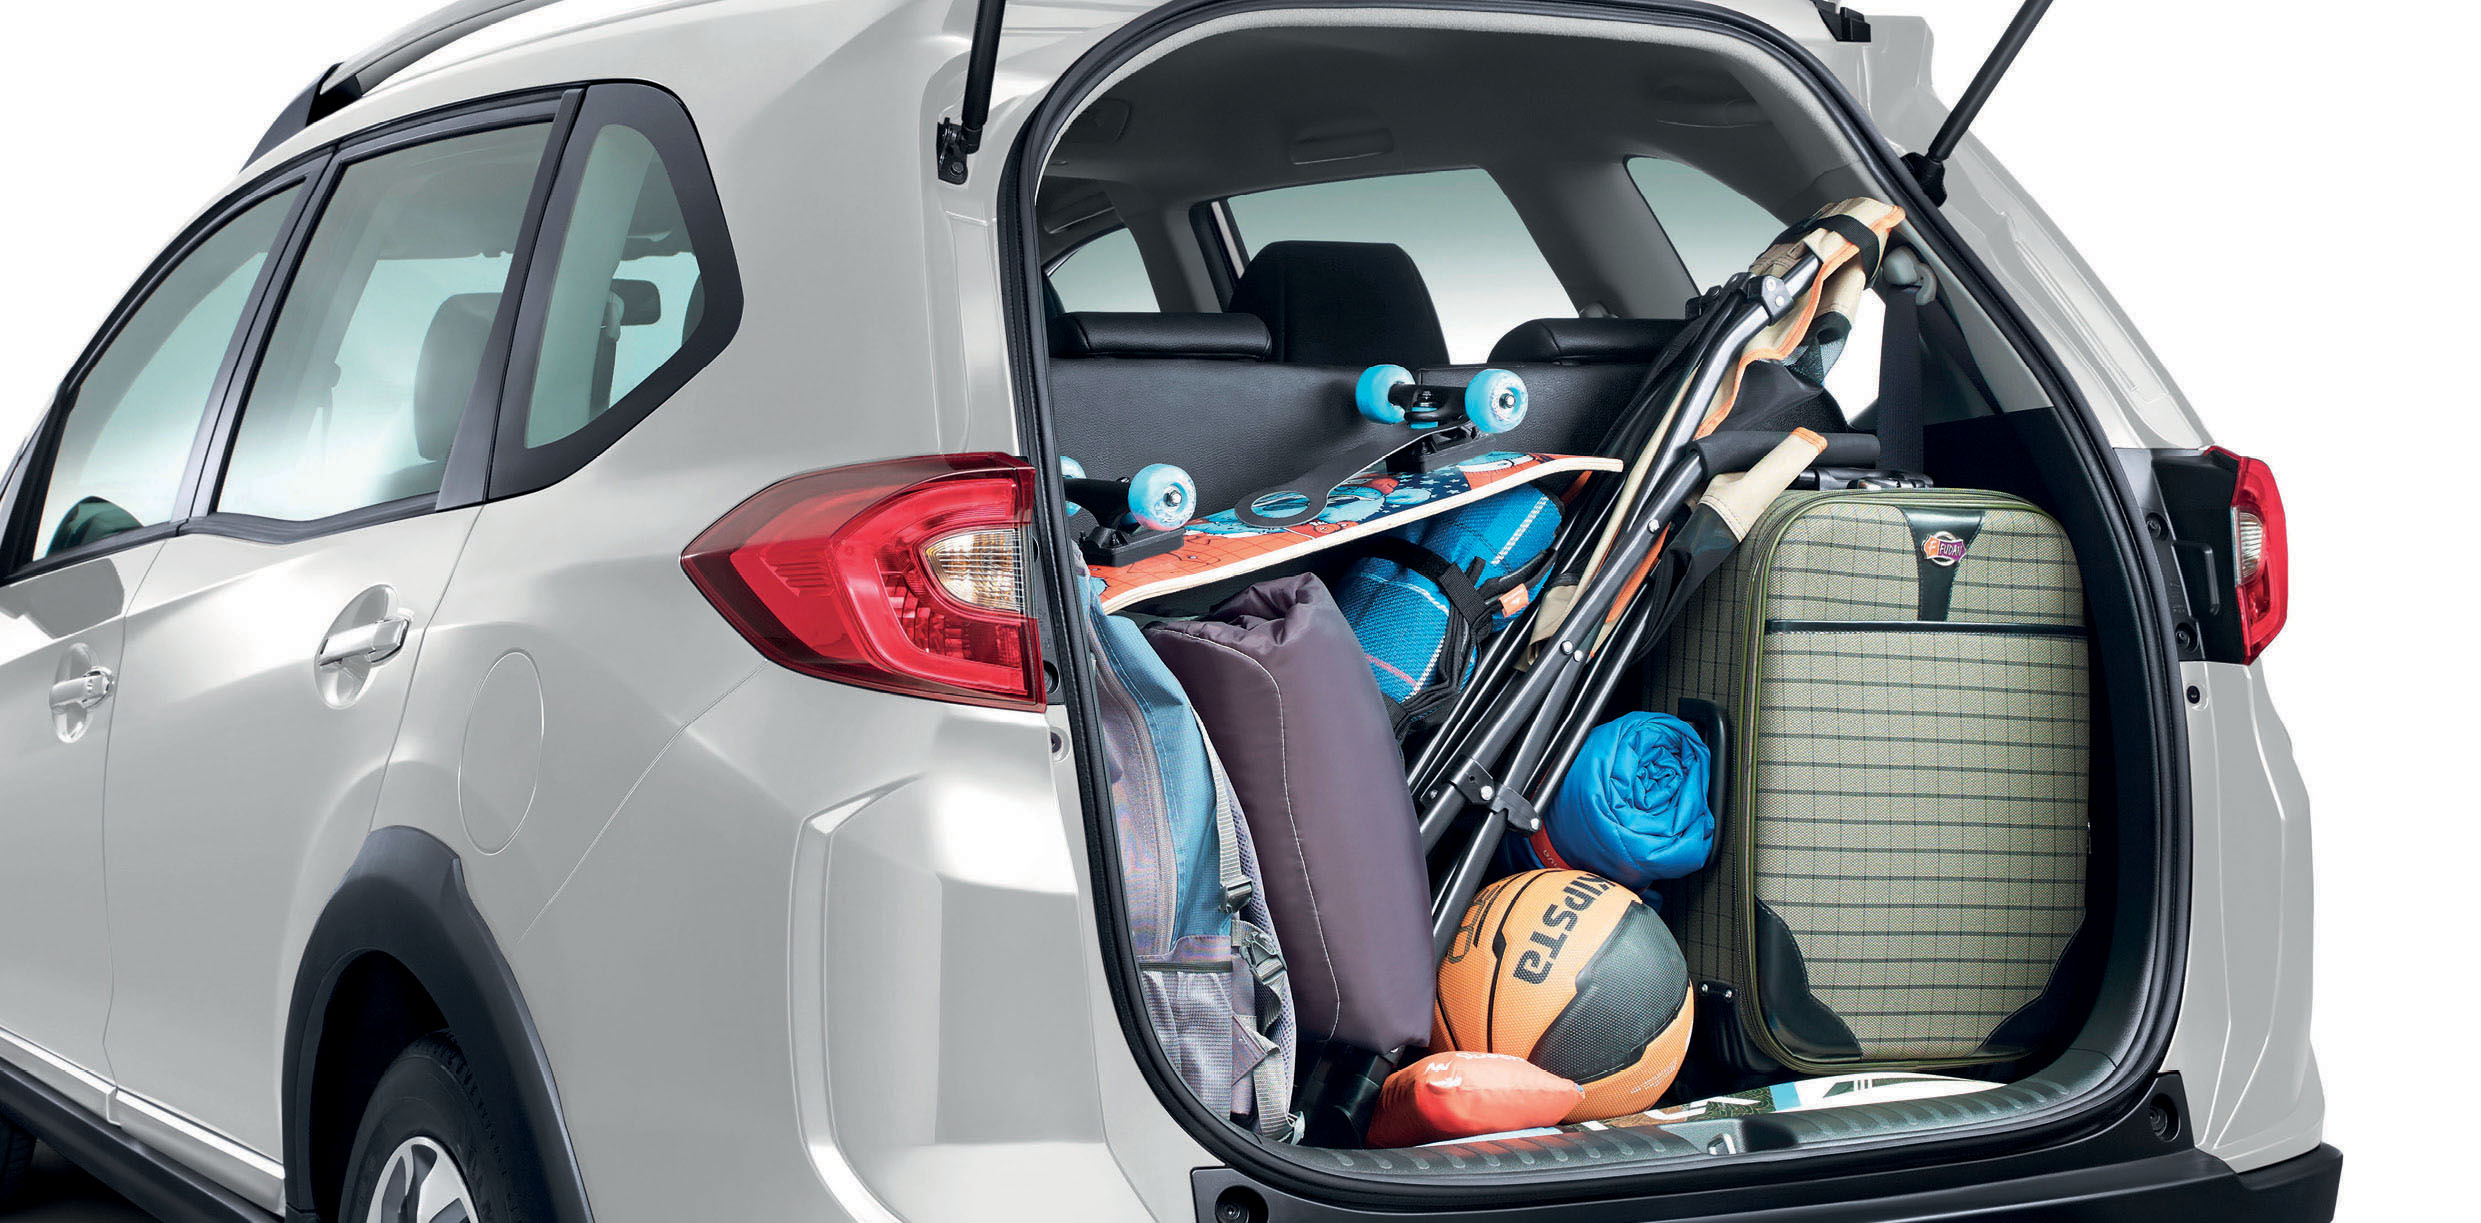 Biggest trunk space - 223 litres with all seats up, 539 litres when 3rd row seats are folded.jpg